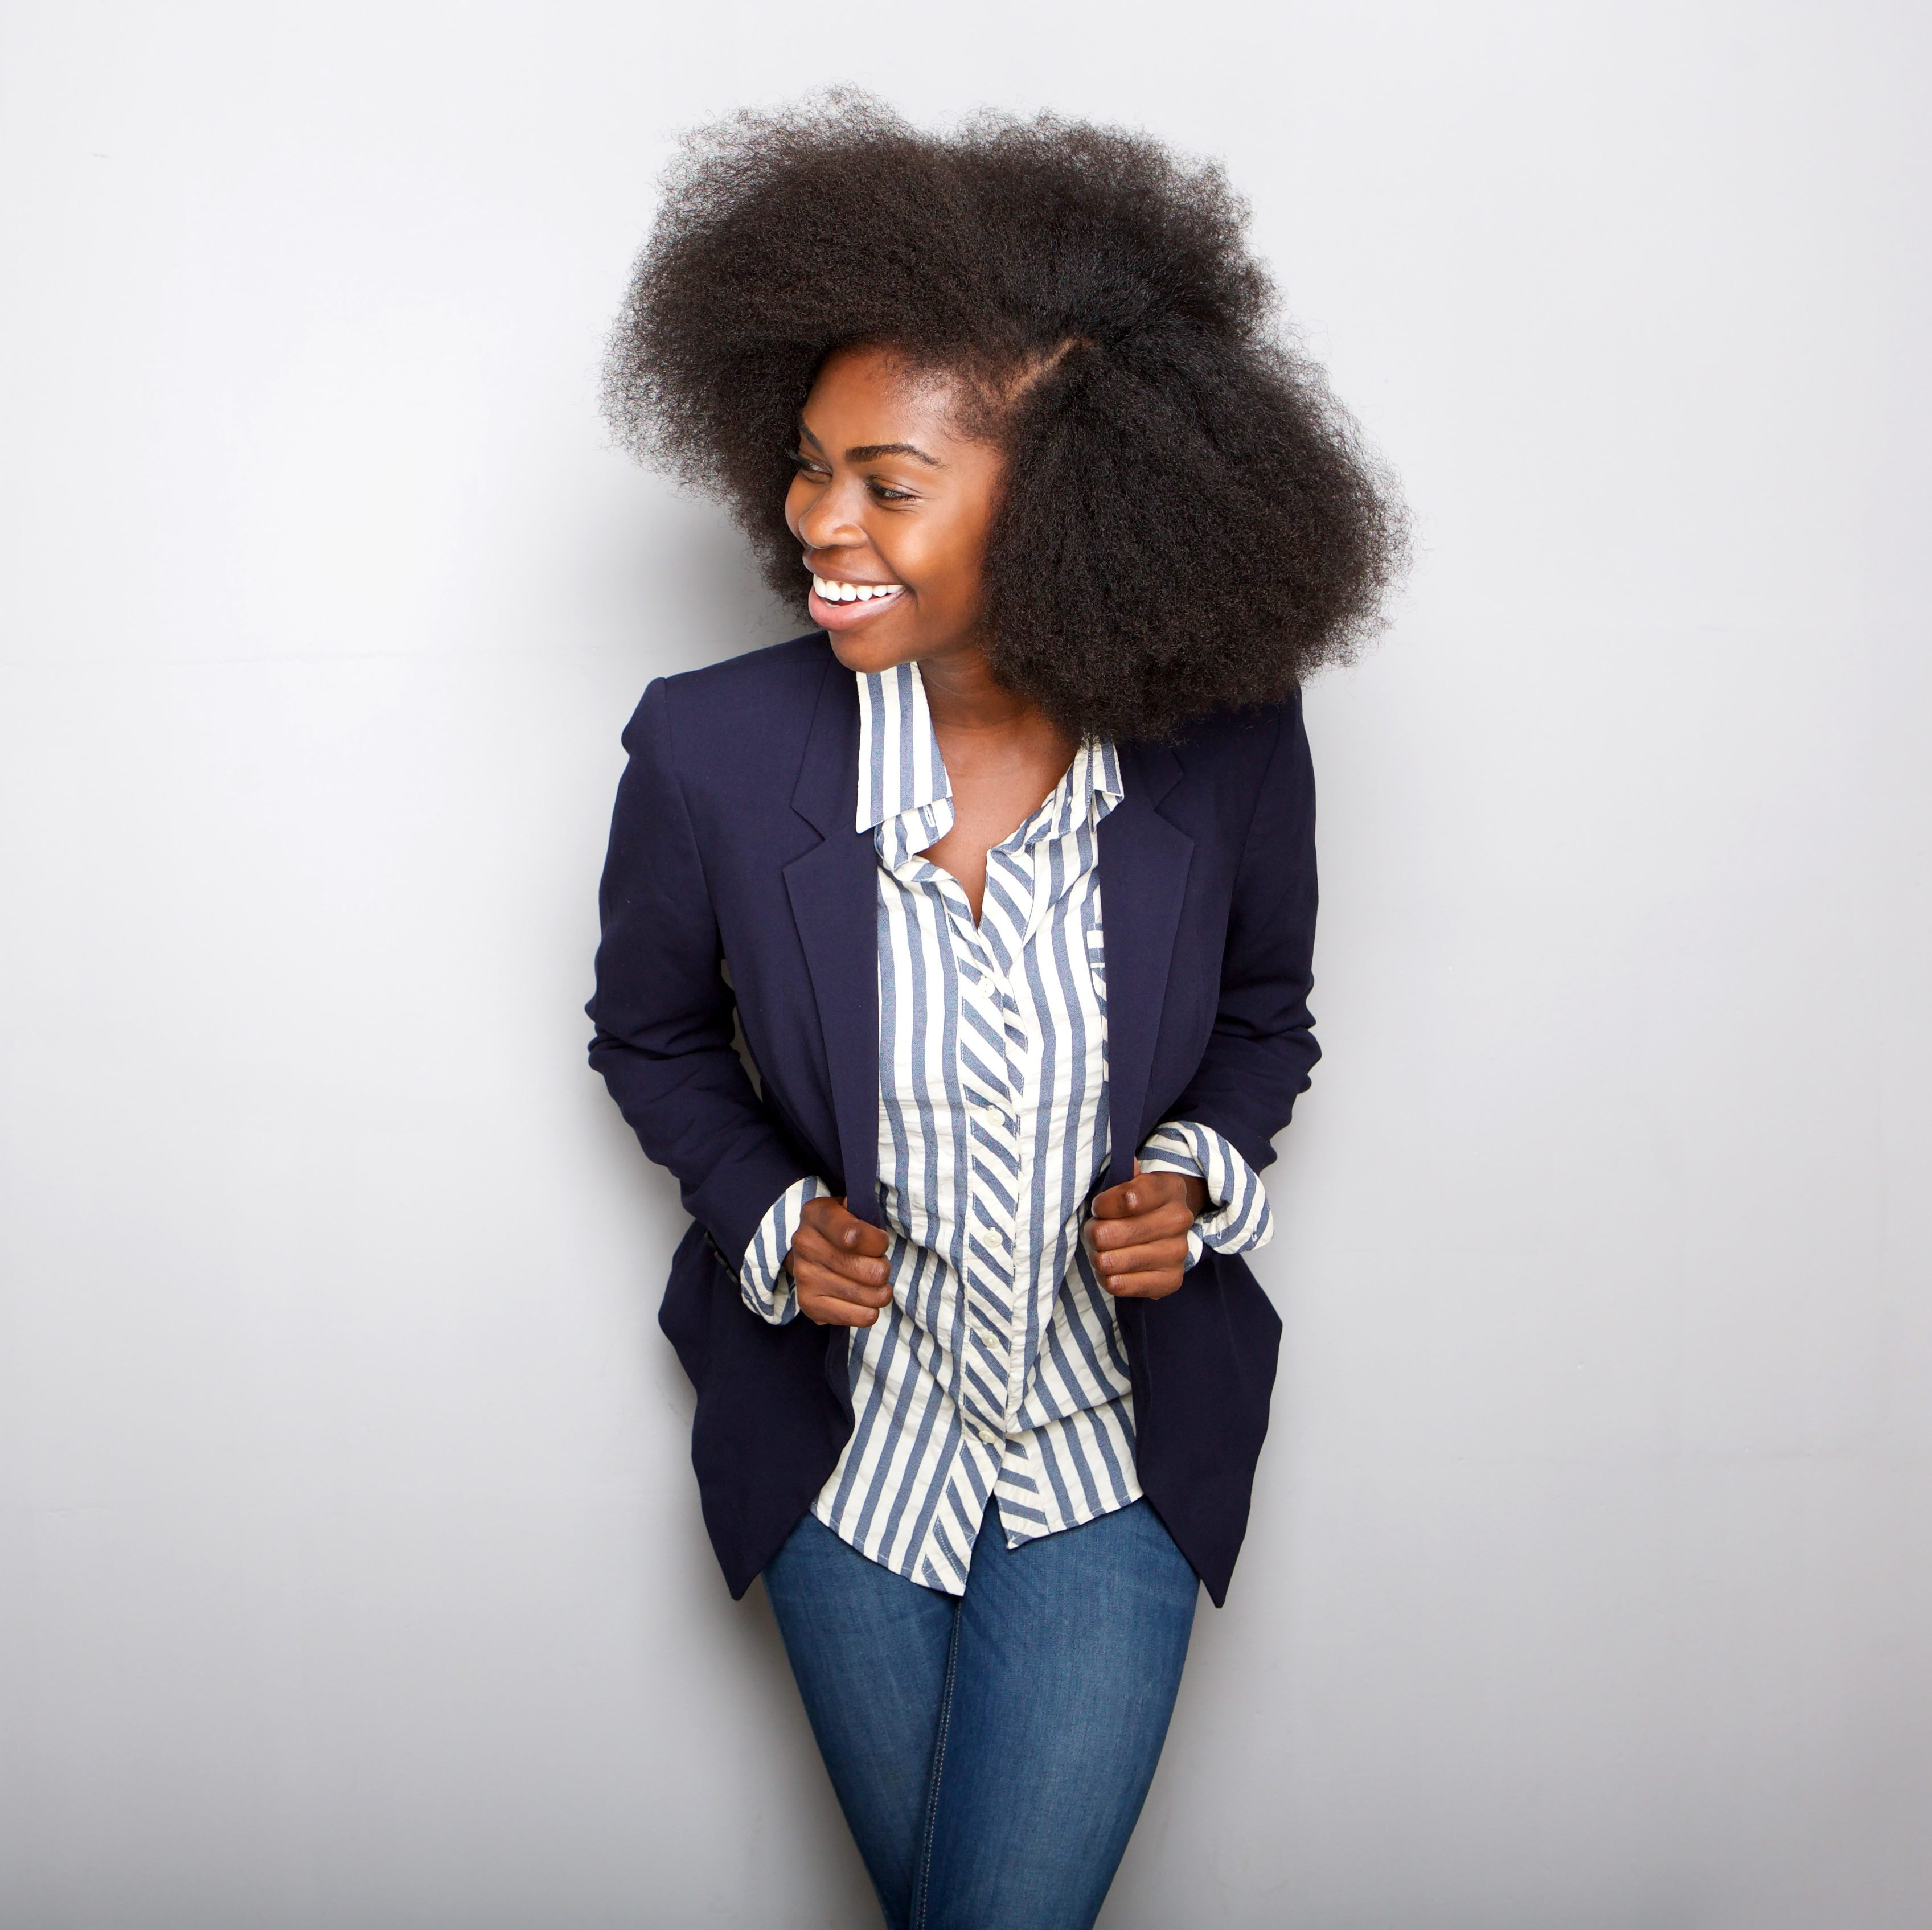 Portrait of attractive young black woman smiling with blazer against gray background